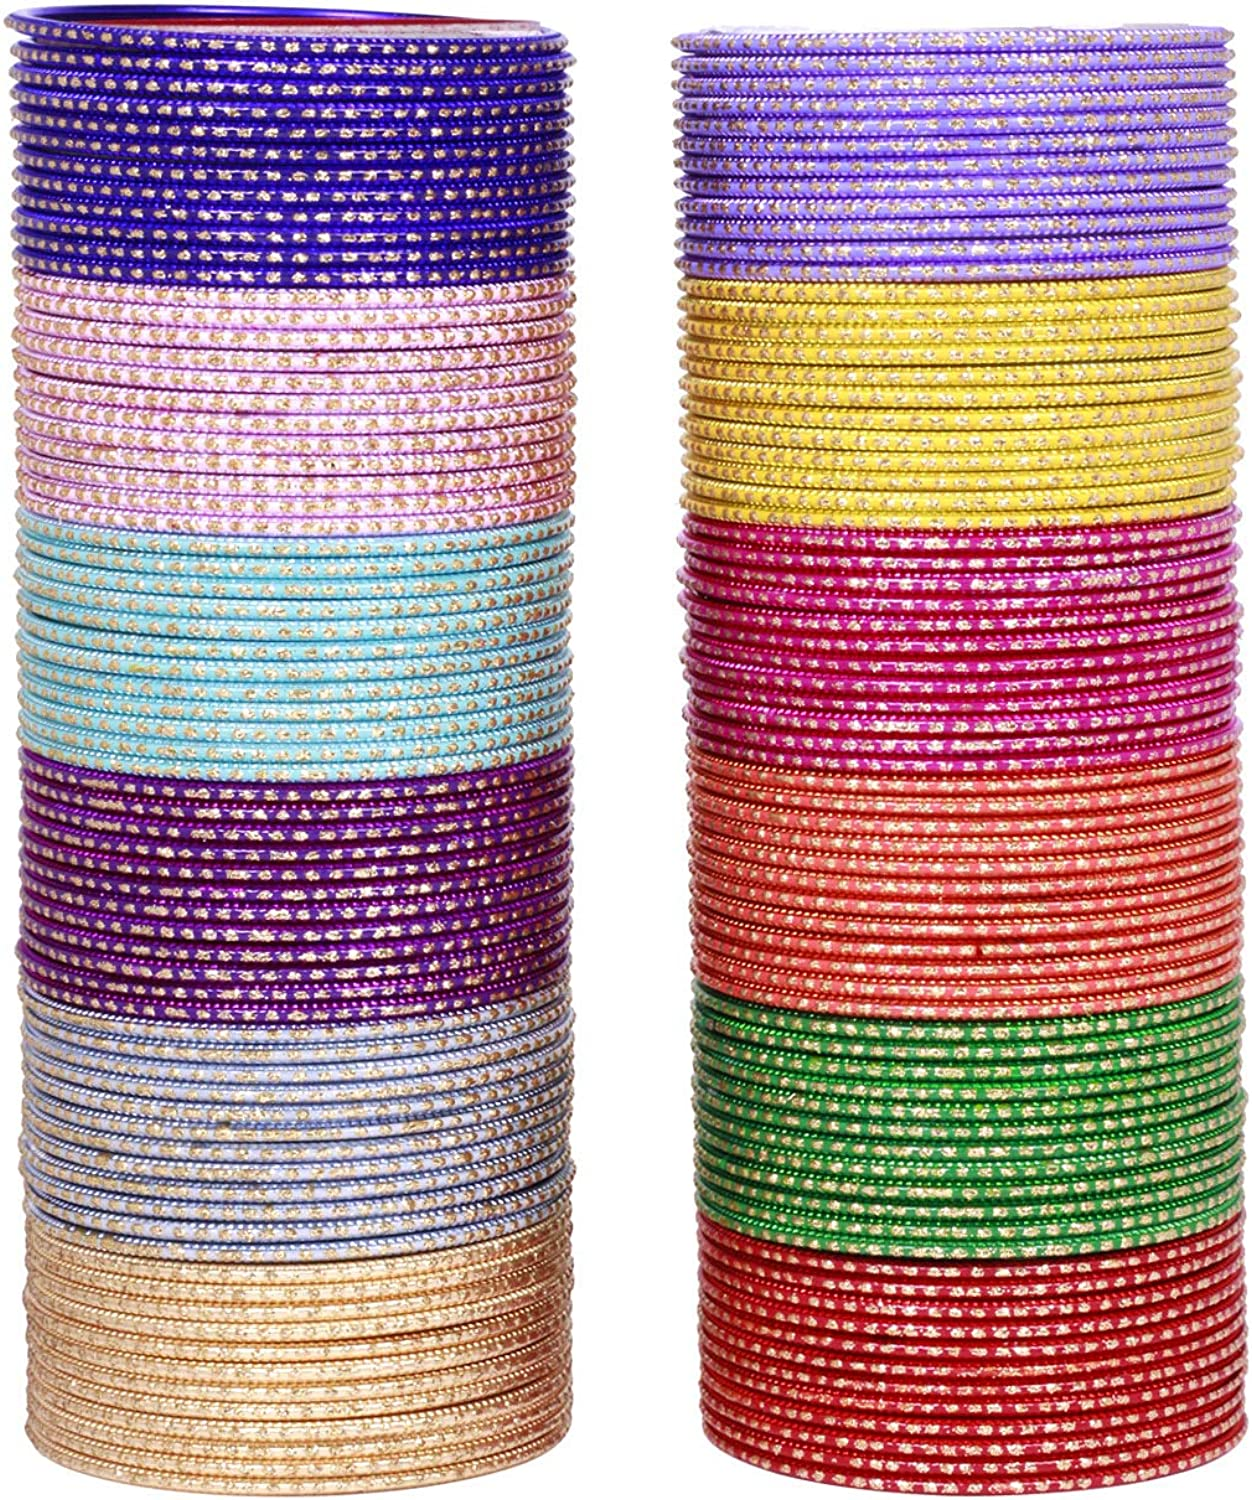 Sukh Collection Jewellery Indian Exclusive Plain Bangles for Wedding & Party Wear Optional Colours for Women & Girls Bollywood Style 144 Pcs Bangle Bracelets Box